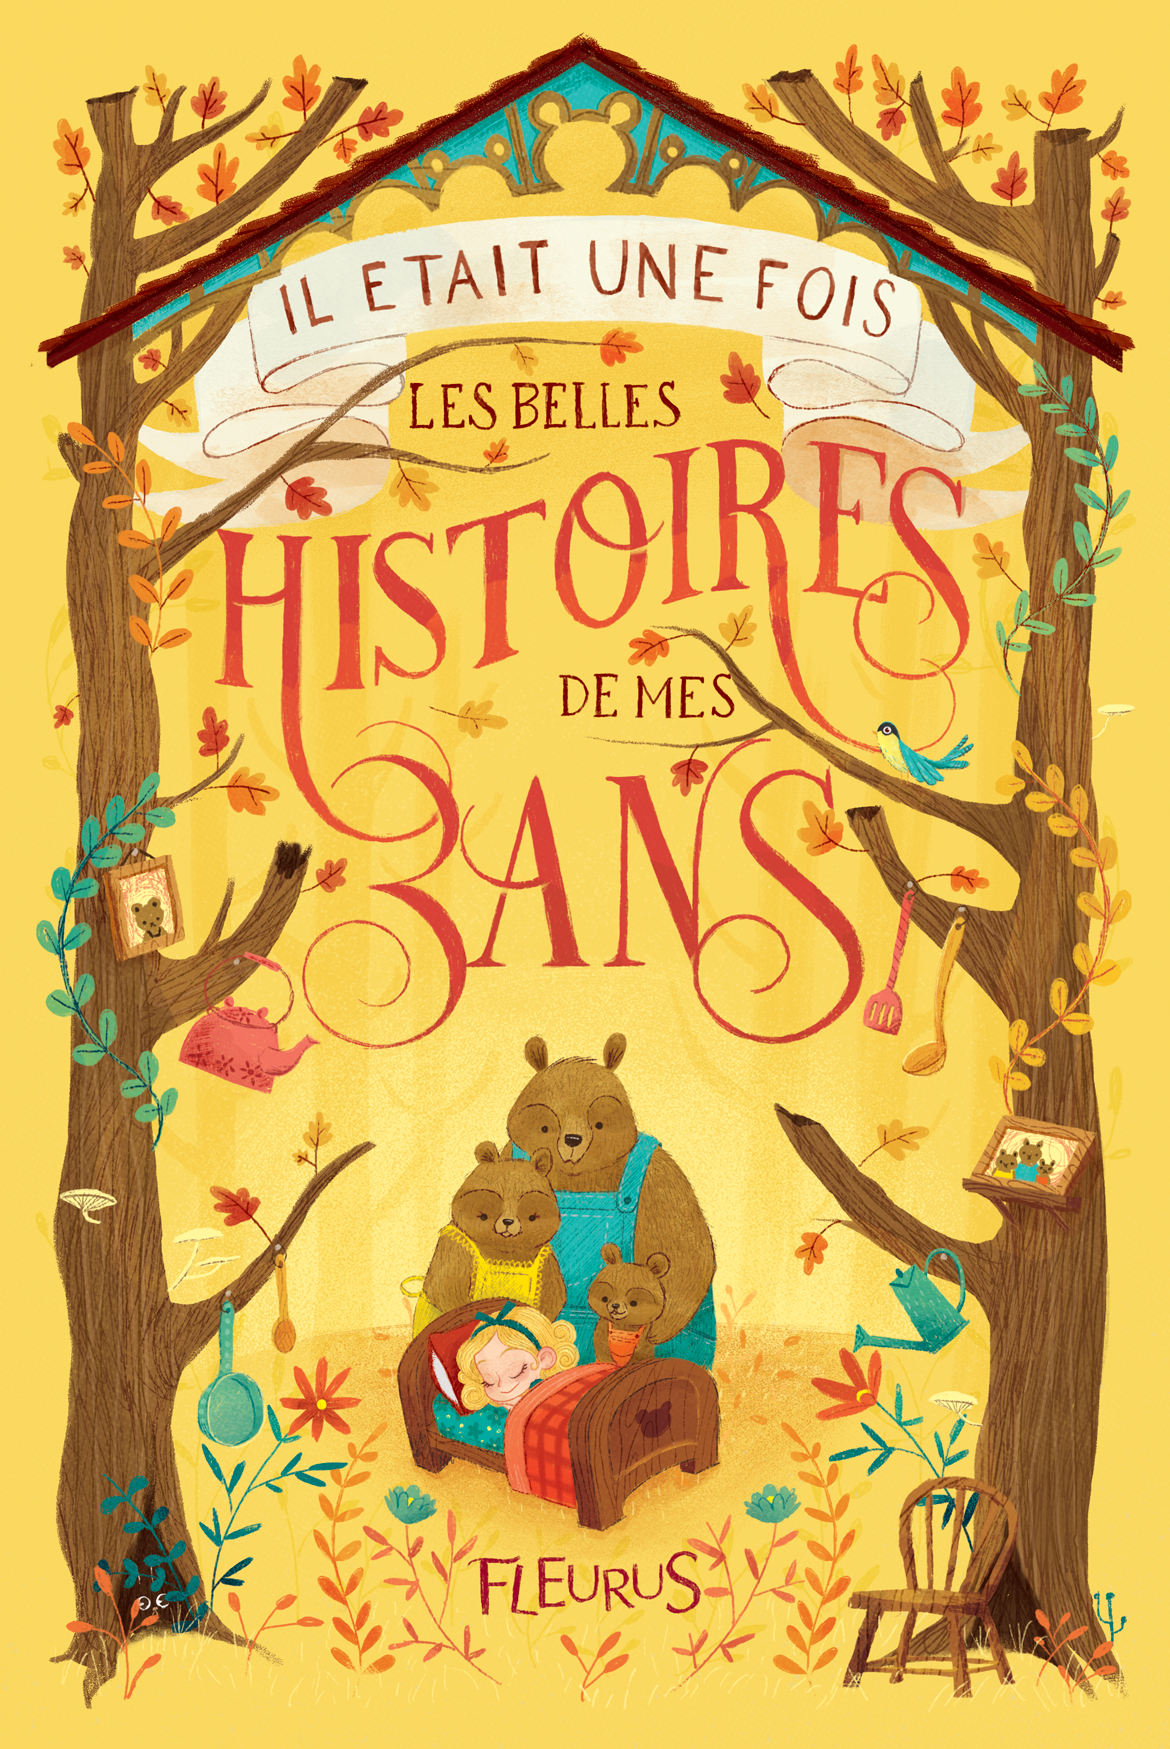 Book Cover Craft Books : Children s book covers for fleurus editions on behance